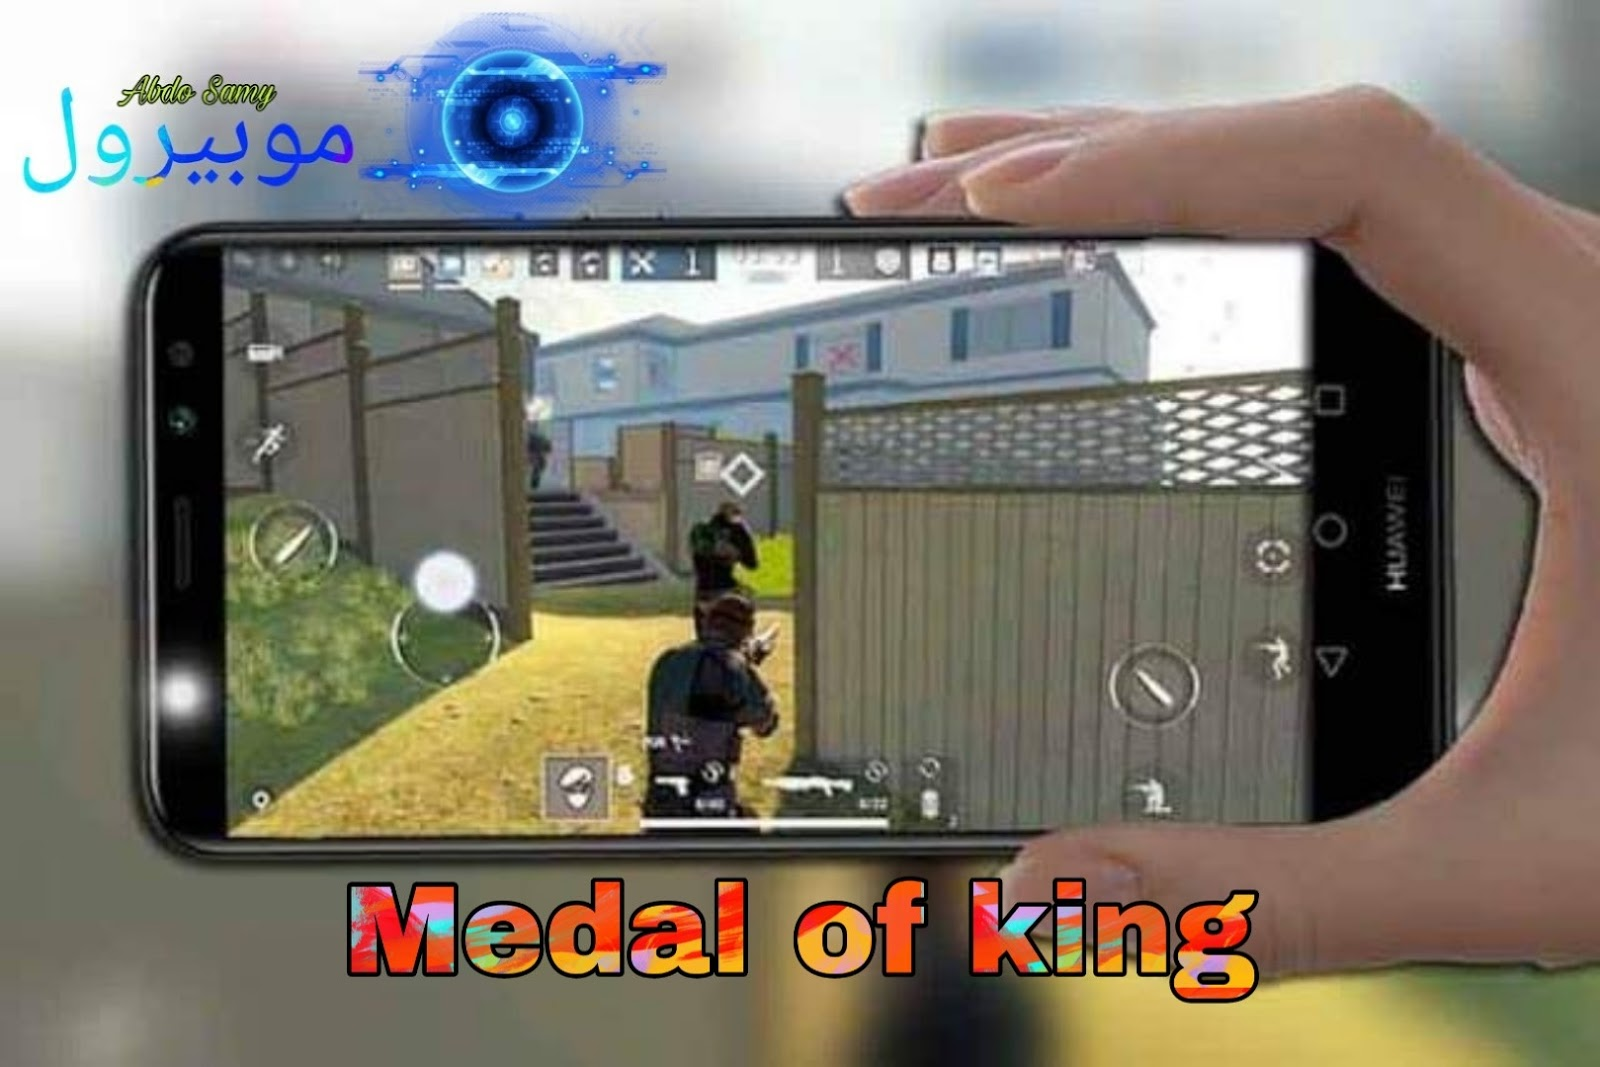 Medal of King